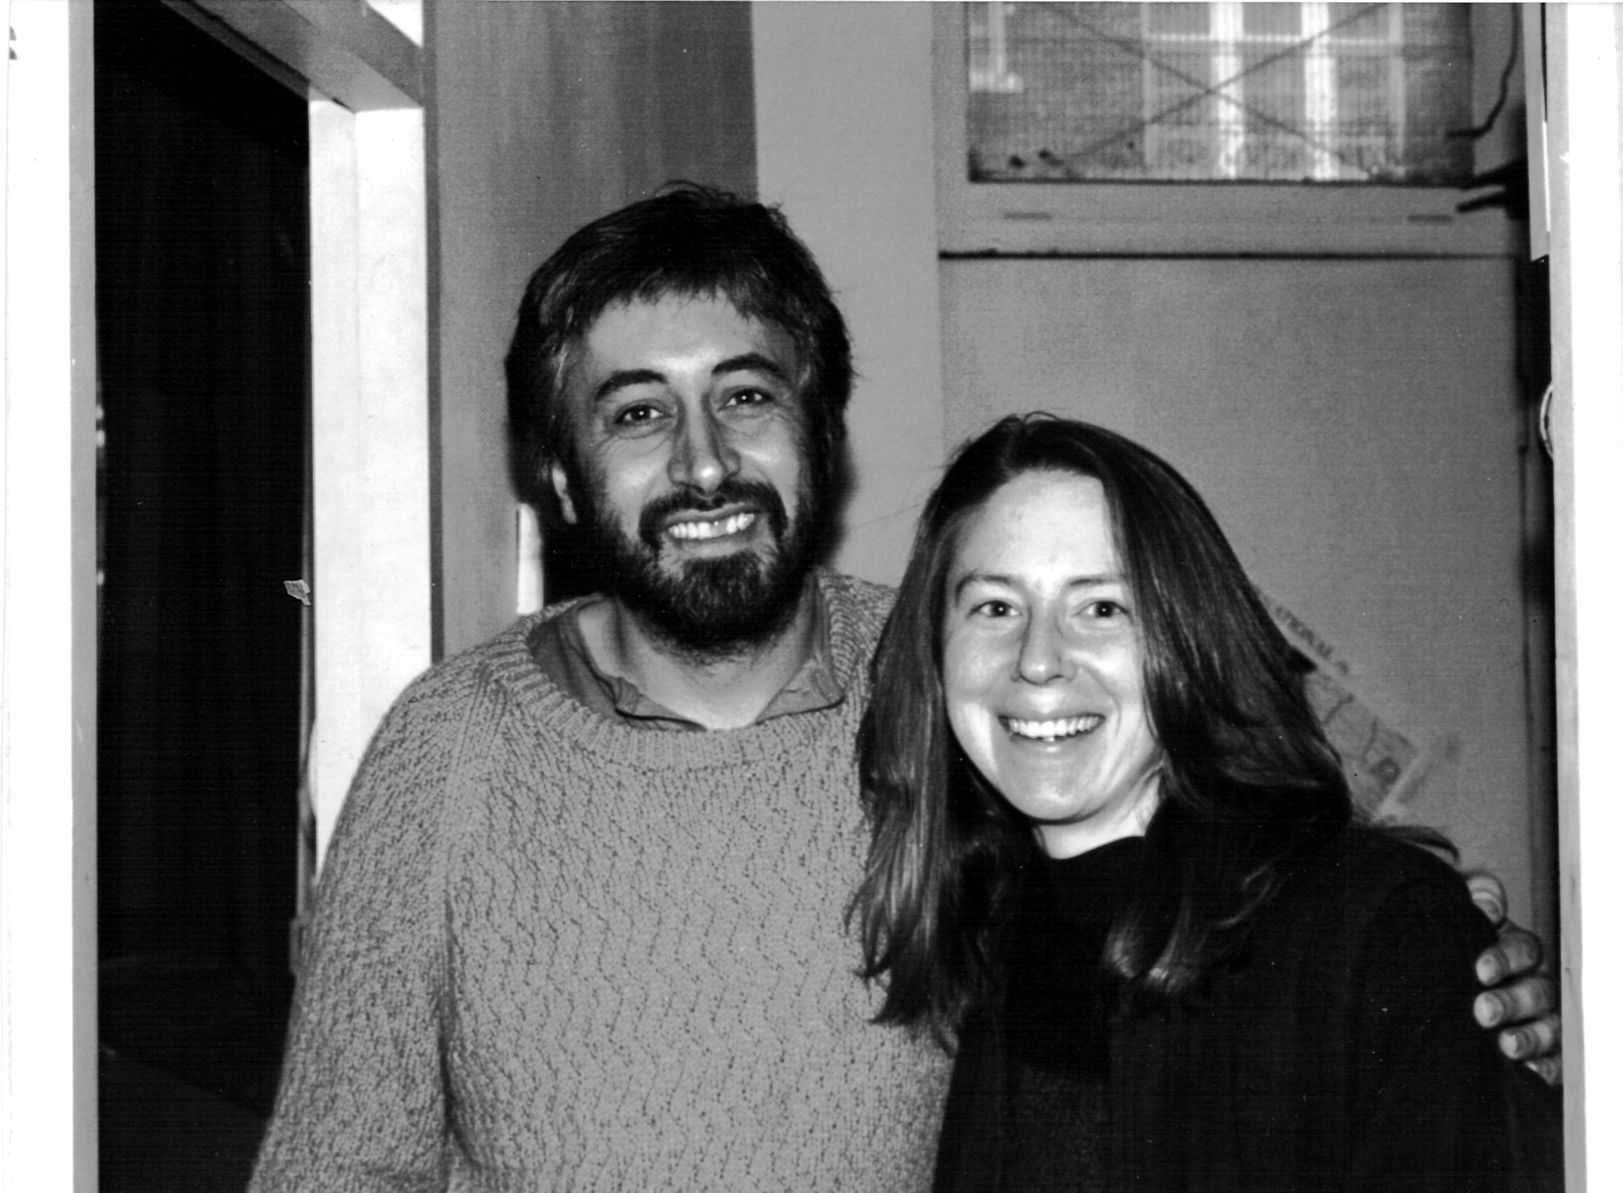 Howard with Jenna Stephens, WRI office volunteer from Alaska, 1992